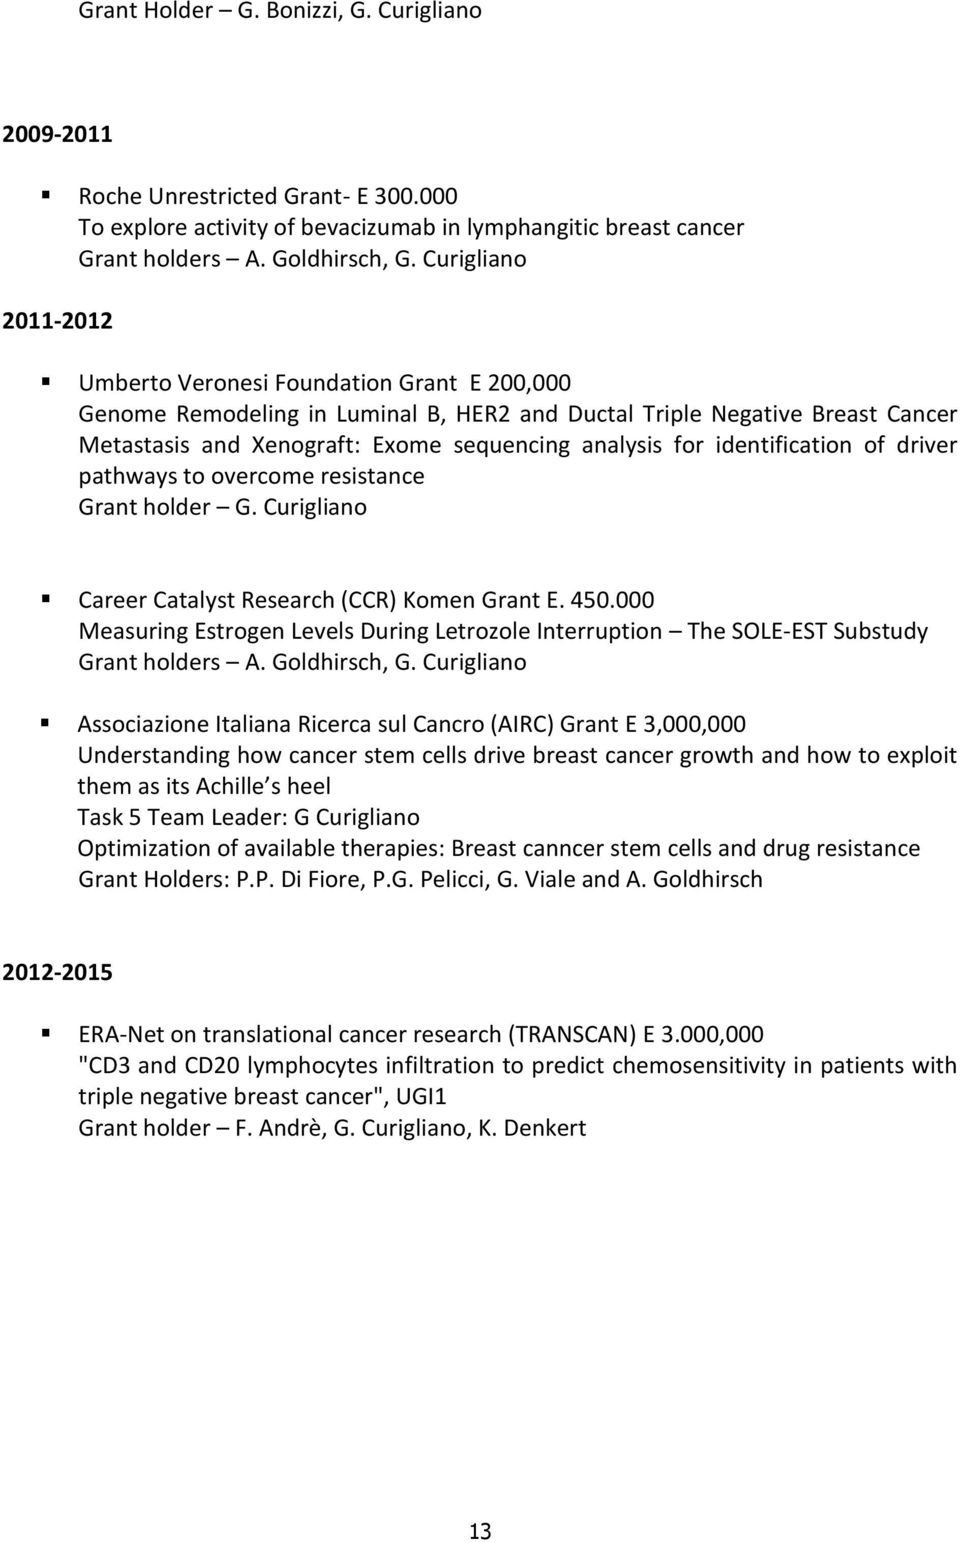 identification of driver pathways to overcome resistance Grant holder G. Curigliano Career Catalyst Research (CCR) Komen Grant E. 450.